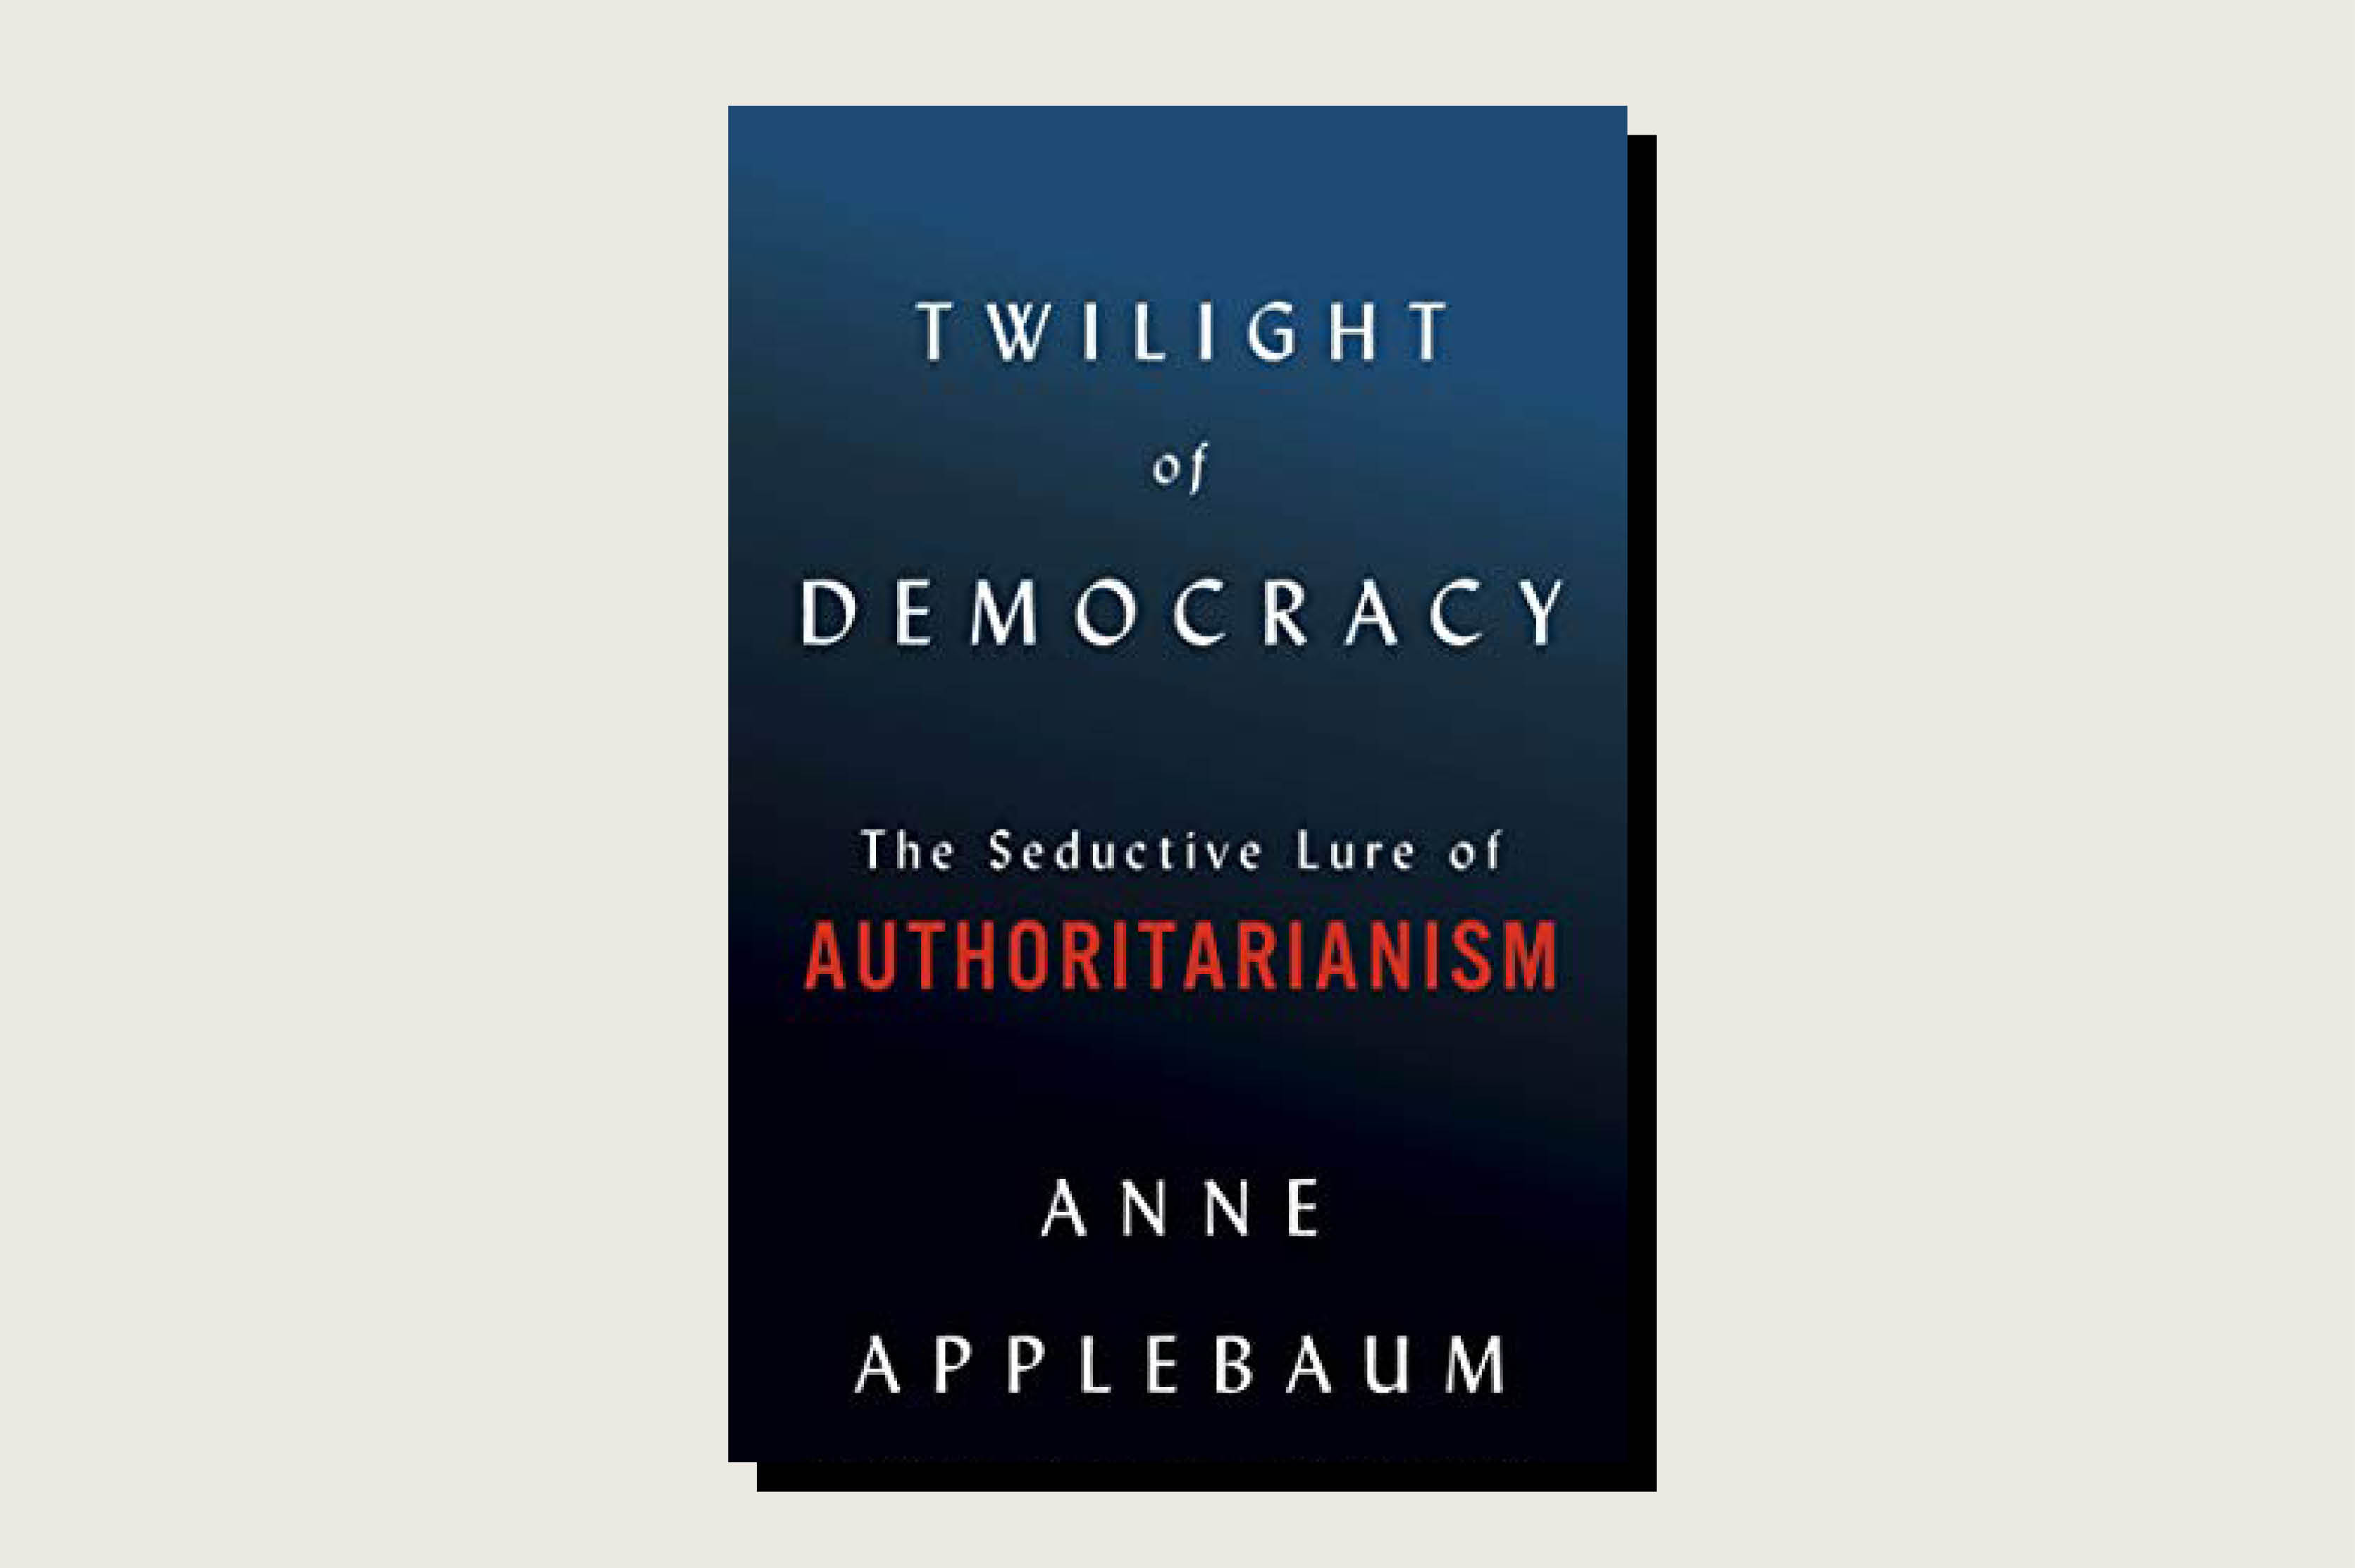 Anne Applebaum, Twilight of Democracy: The Seductive Lure of Authoritarianism, Doubleday, 224 pp., , July 2020